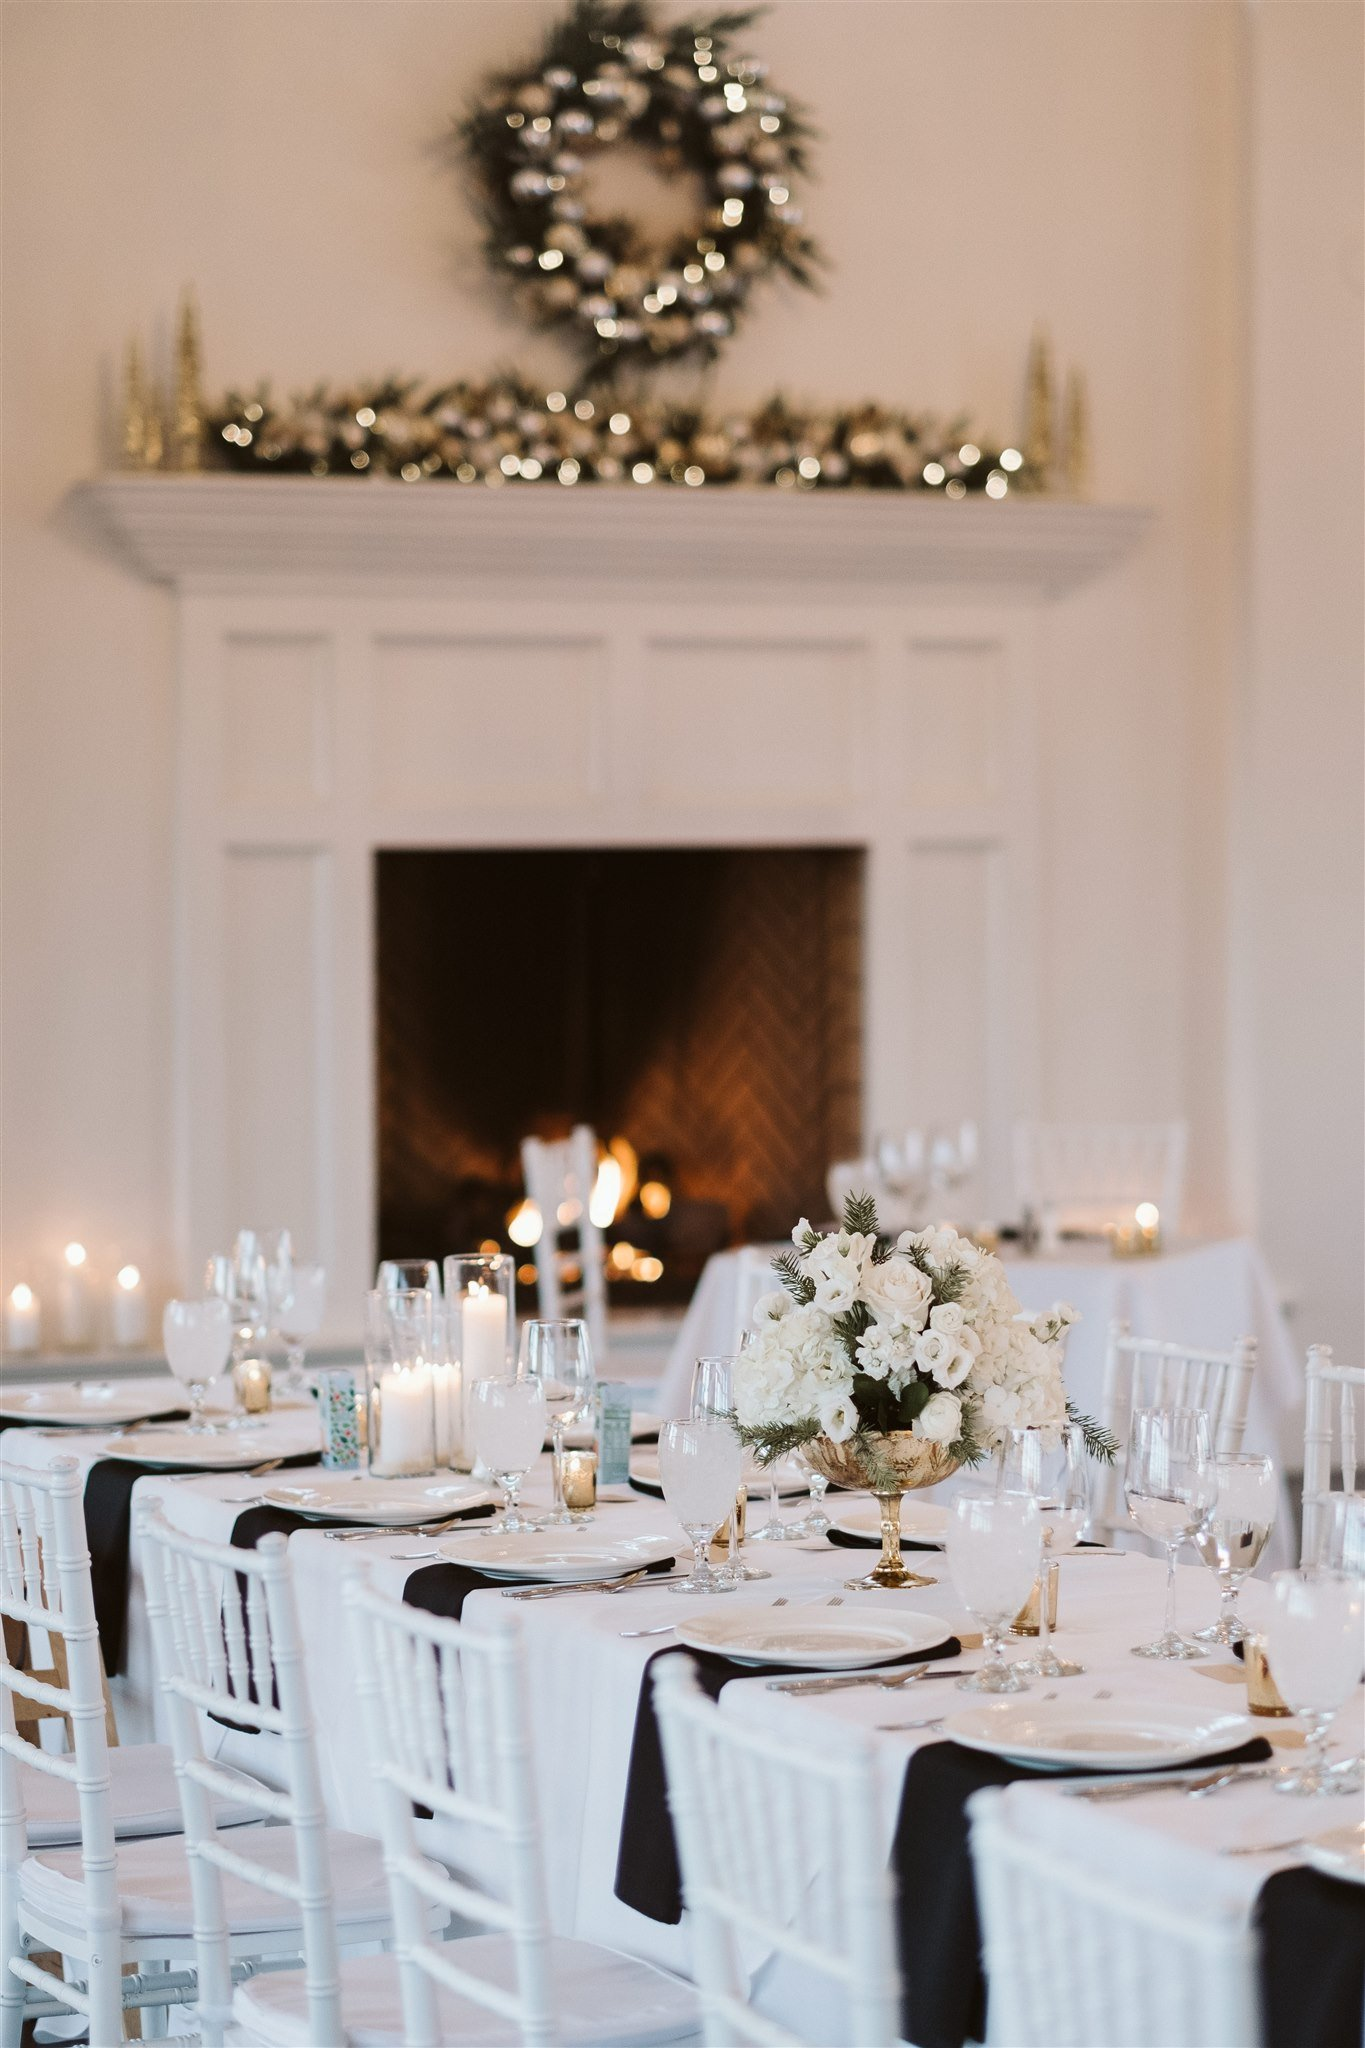 Winter wedding reception decor with white and green flowers and evergreens